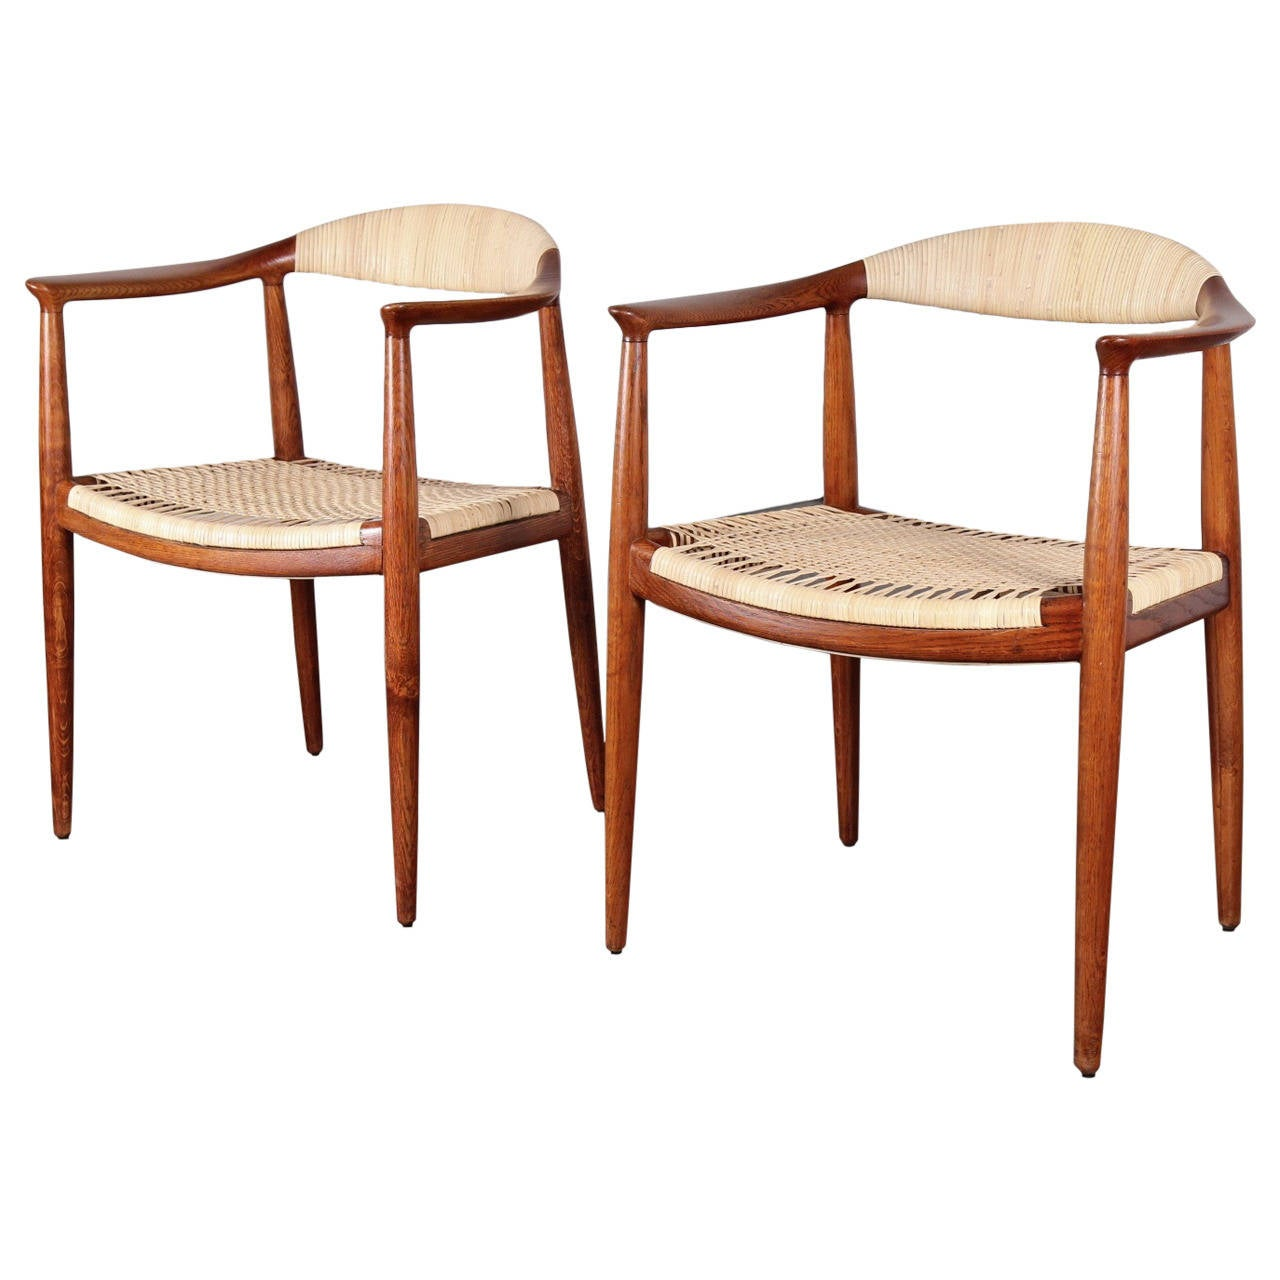 Cane Round Chairs By Hans Wegner At 1stdibs